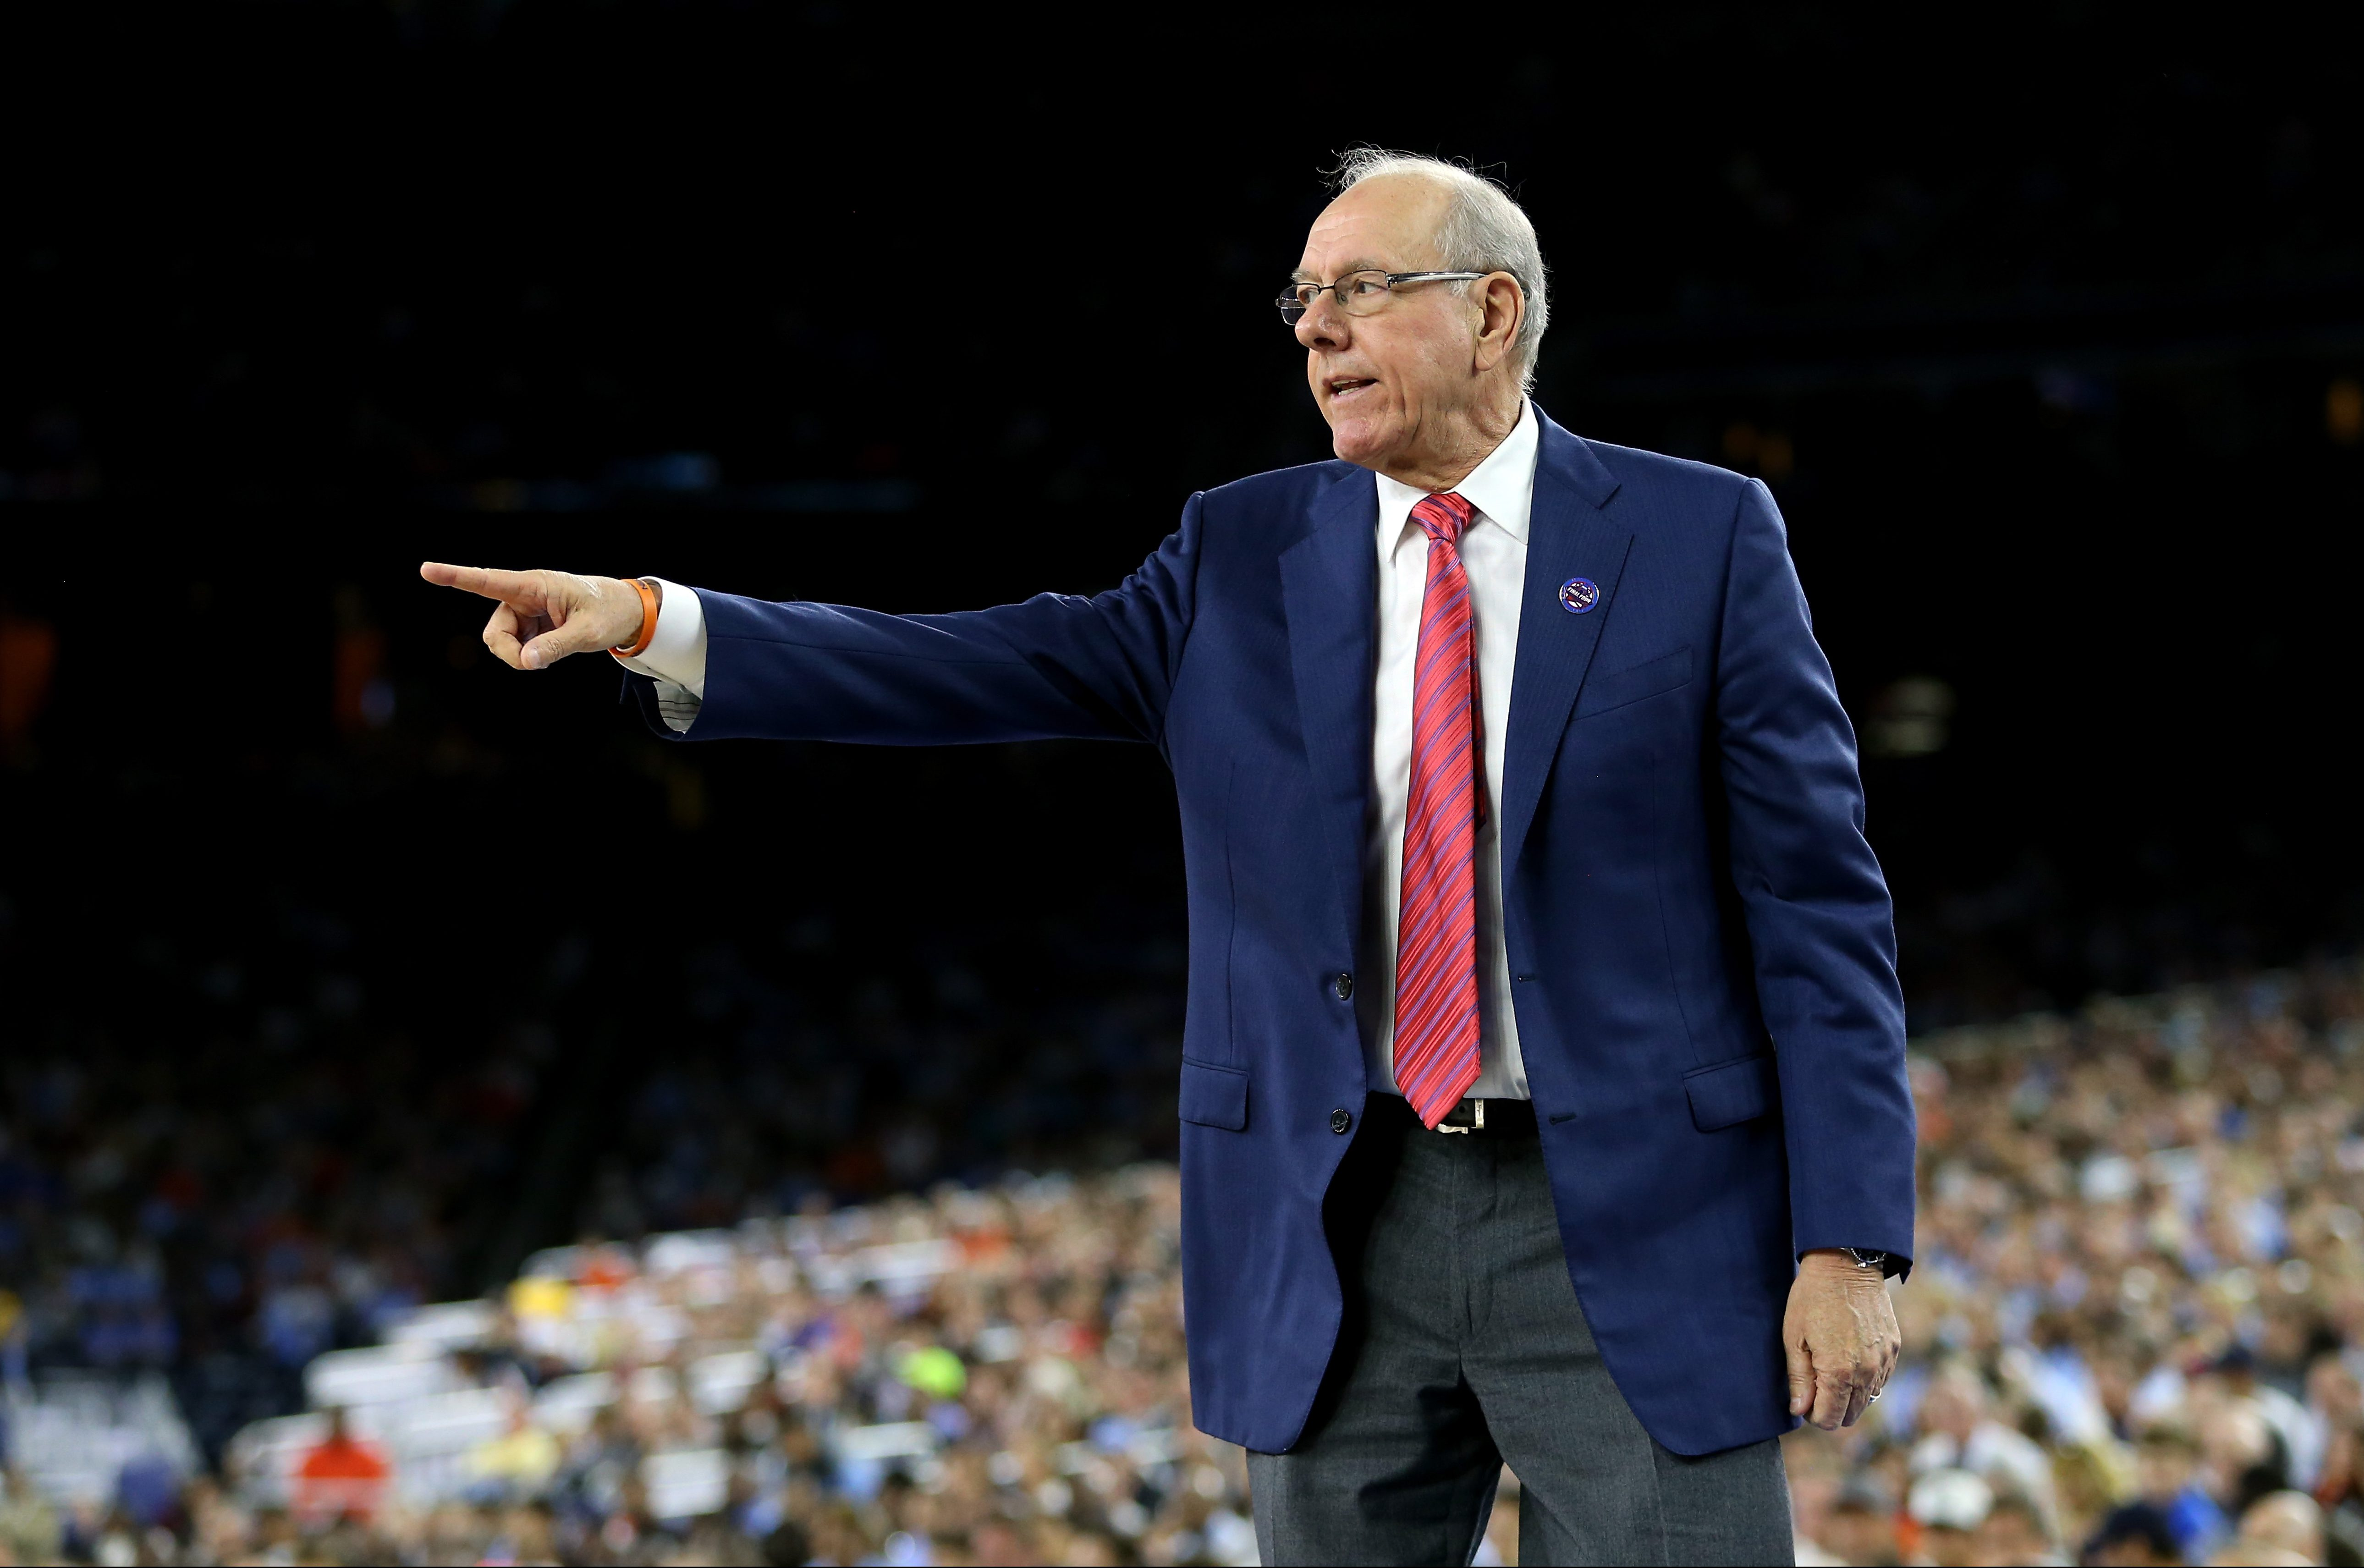 HOUSTON, TEXAS - APRIL 02: Head coach Jim Boeheim of the Syracuse Orange reacts in the first half against the North Carolina Tar Heels during the NCAA Men's Final Four Semifinal at NRG Stadium on April 2, 2016 in Houston, Texas. (Photo by Streeter Lecka/Getty Images)